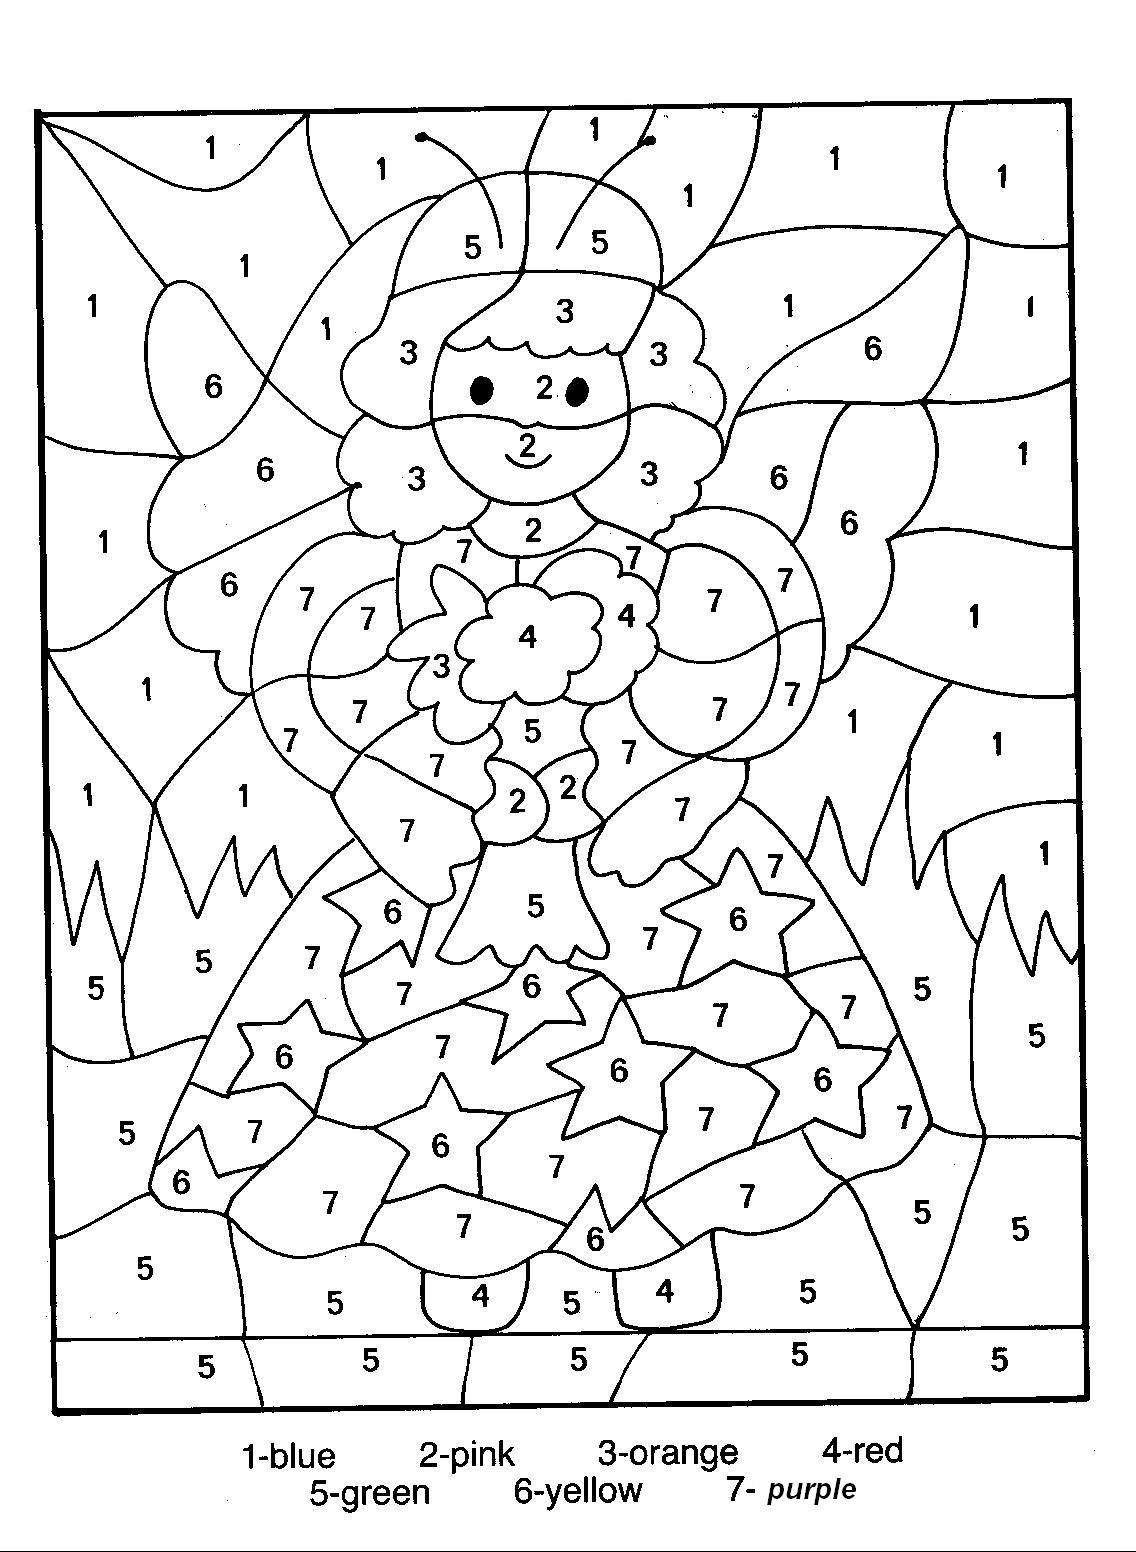 Christmas Coloring Pages for Adults | Digg Stumbleupon Del.icio.us ...